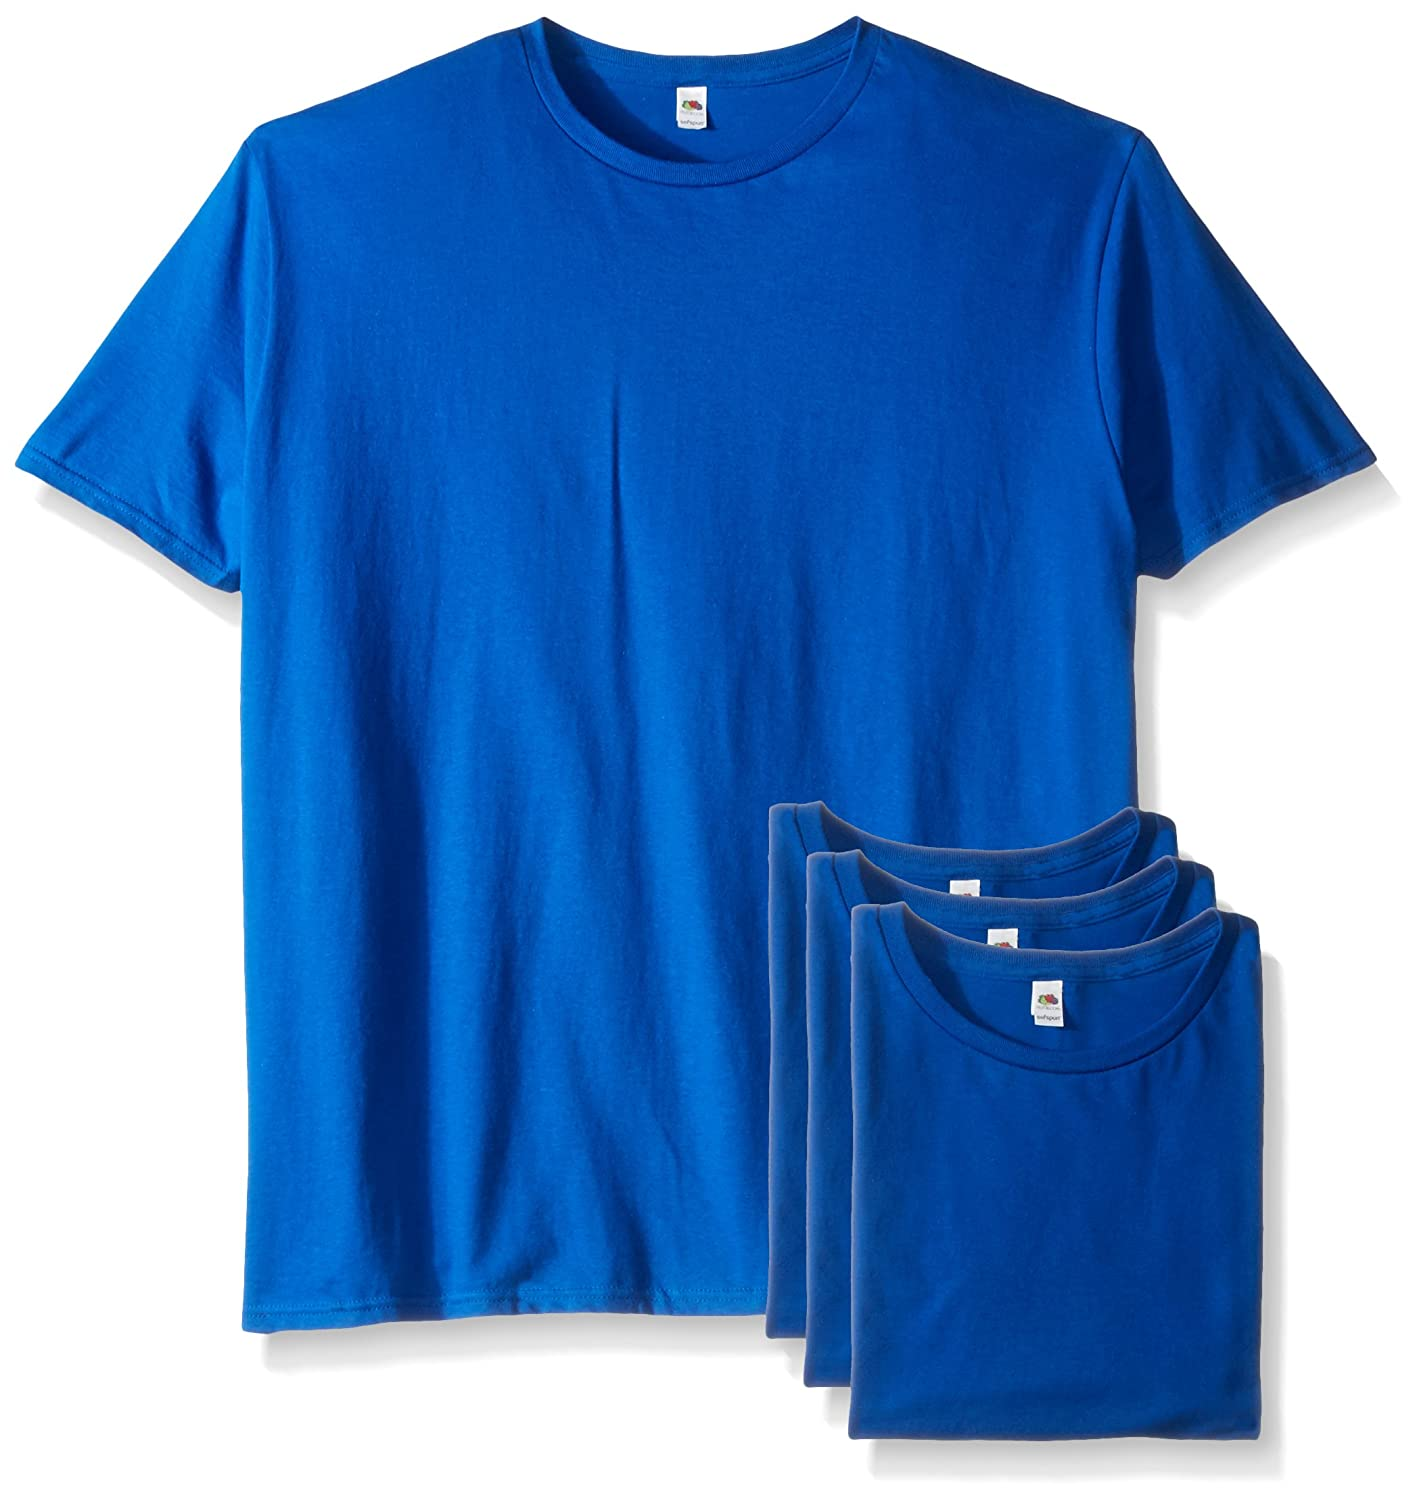 Fruit of the Loom Men's Crew T-Shirt (4 Pack) SF45R4P